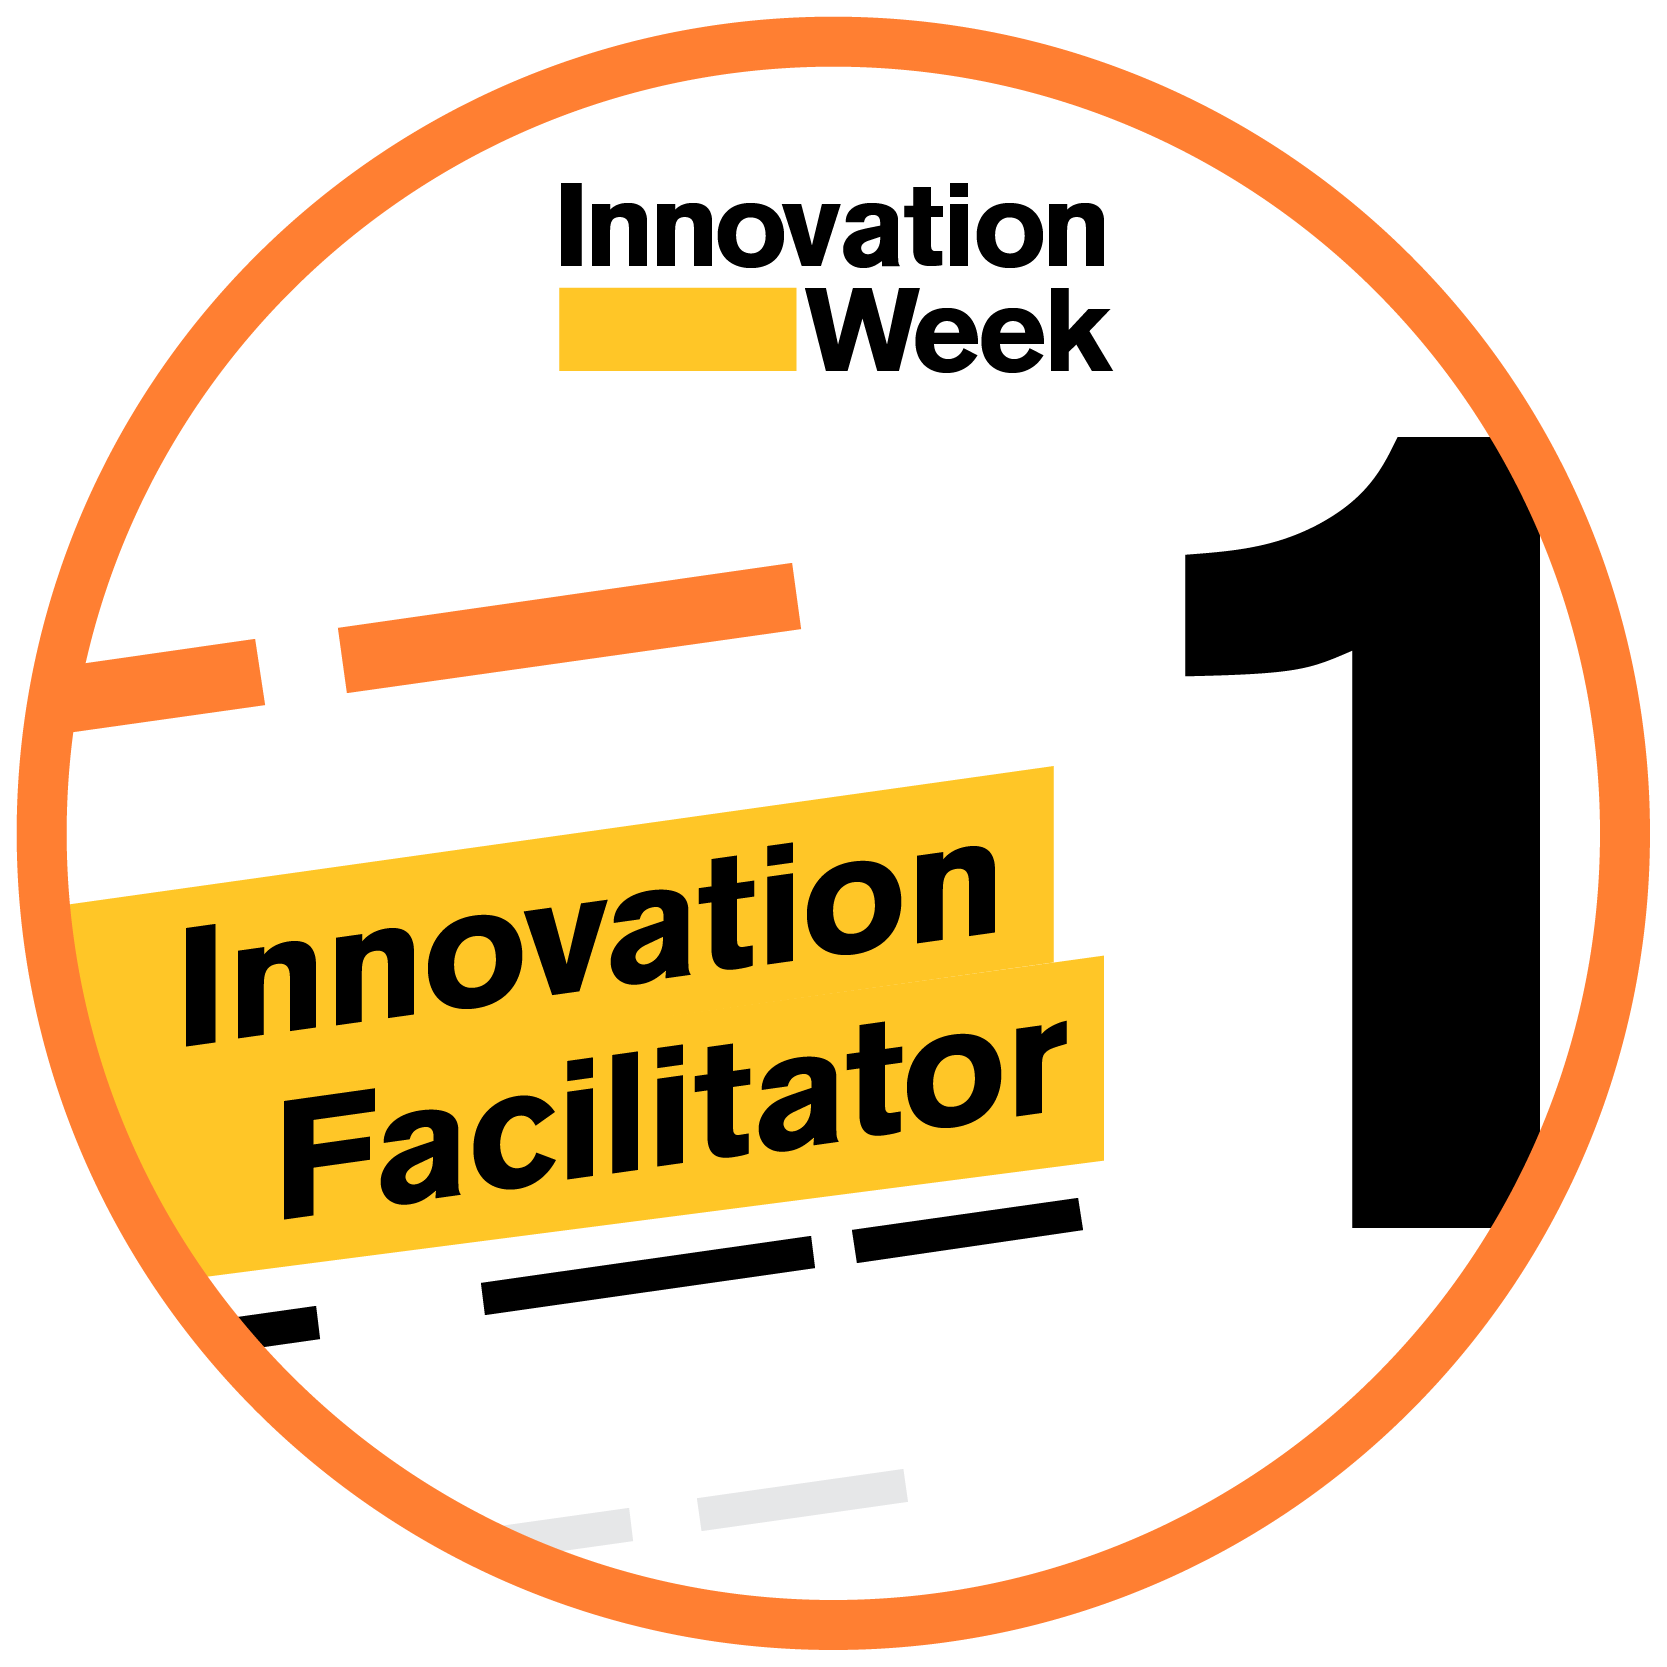 innovation faciltator